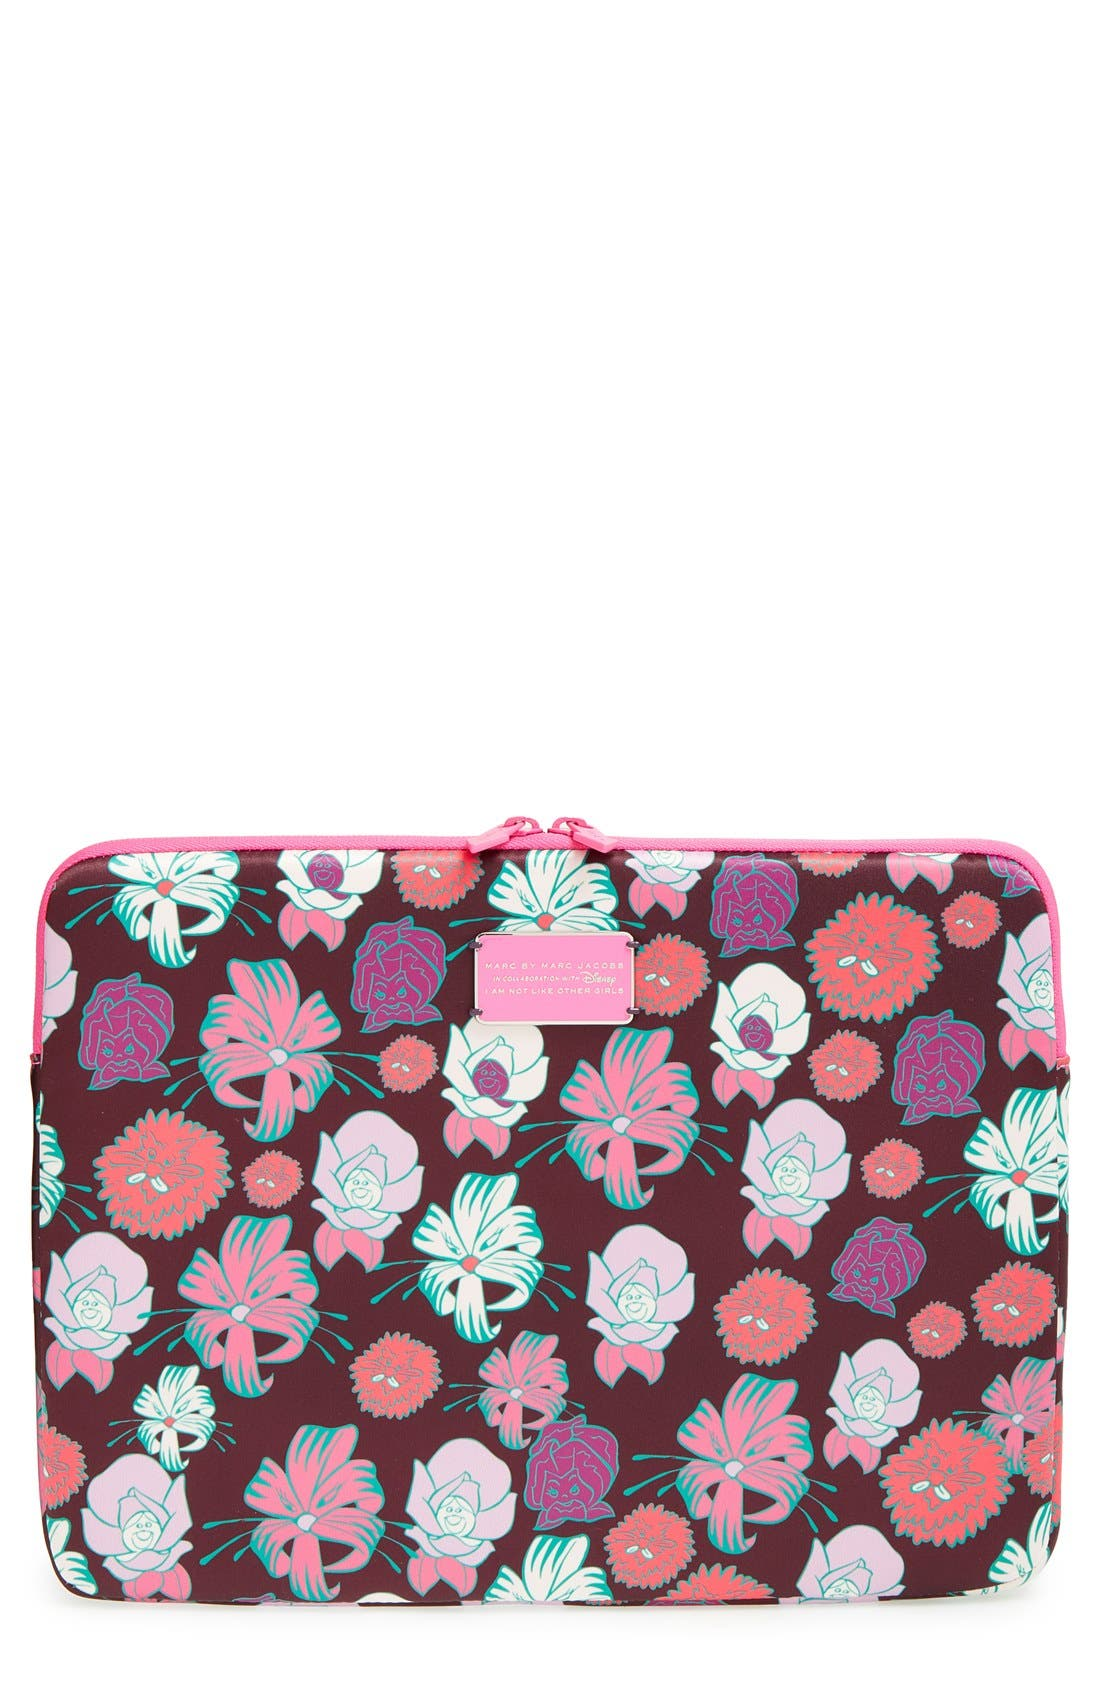 Main Image - MARC BY MARC JACOBS x Disney® 'Alice in Wonderland - Laughing Flowers' Computer Case (13 Inch)